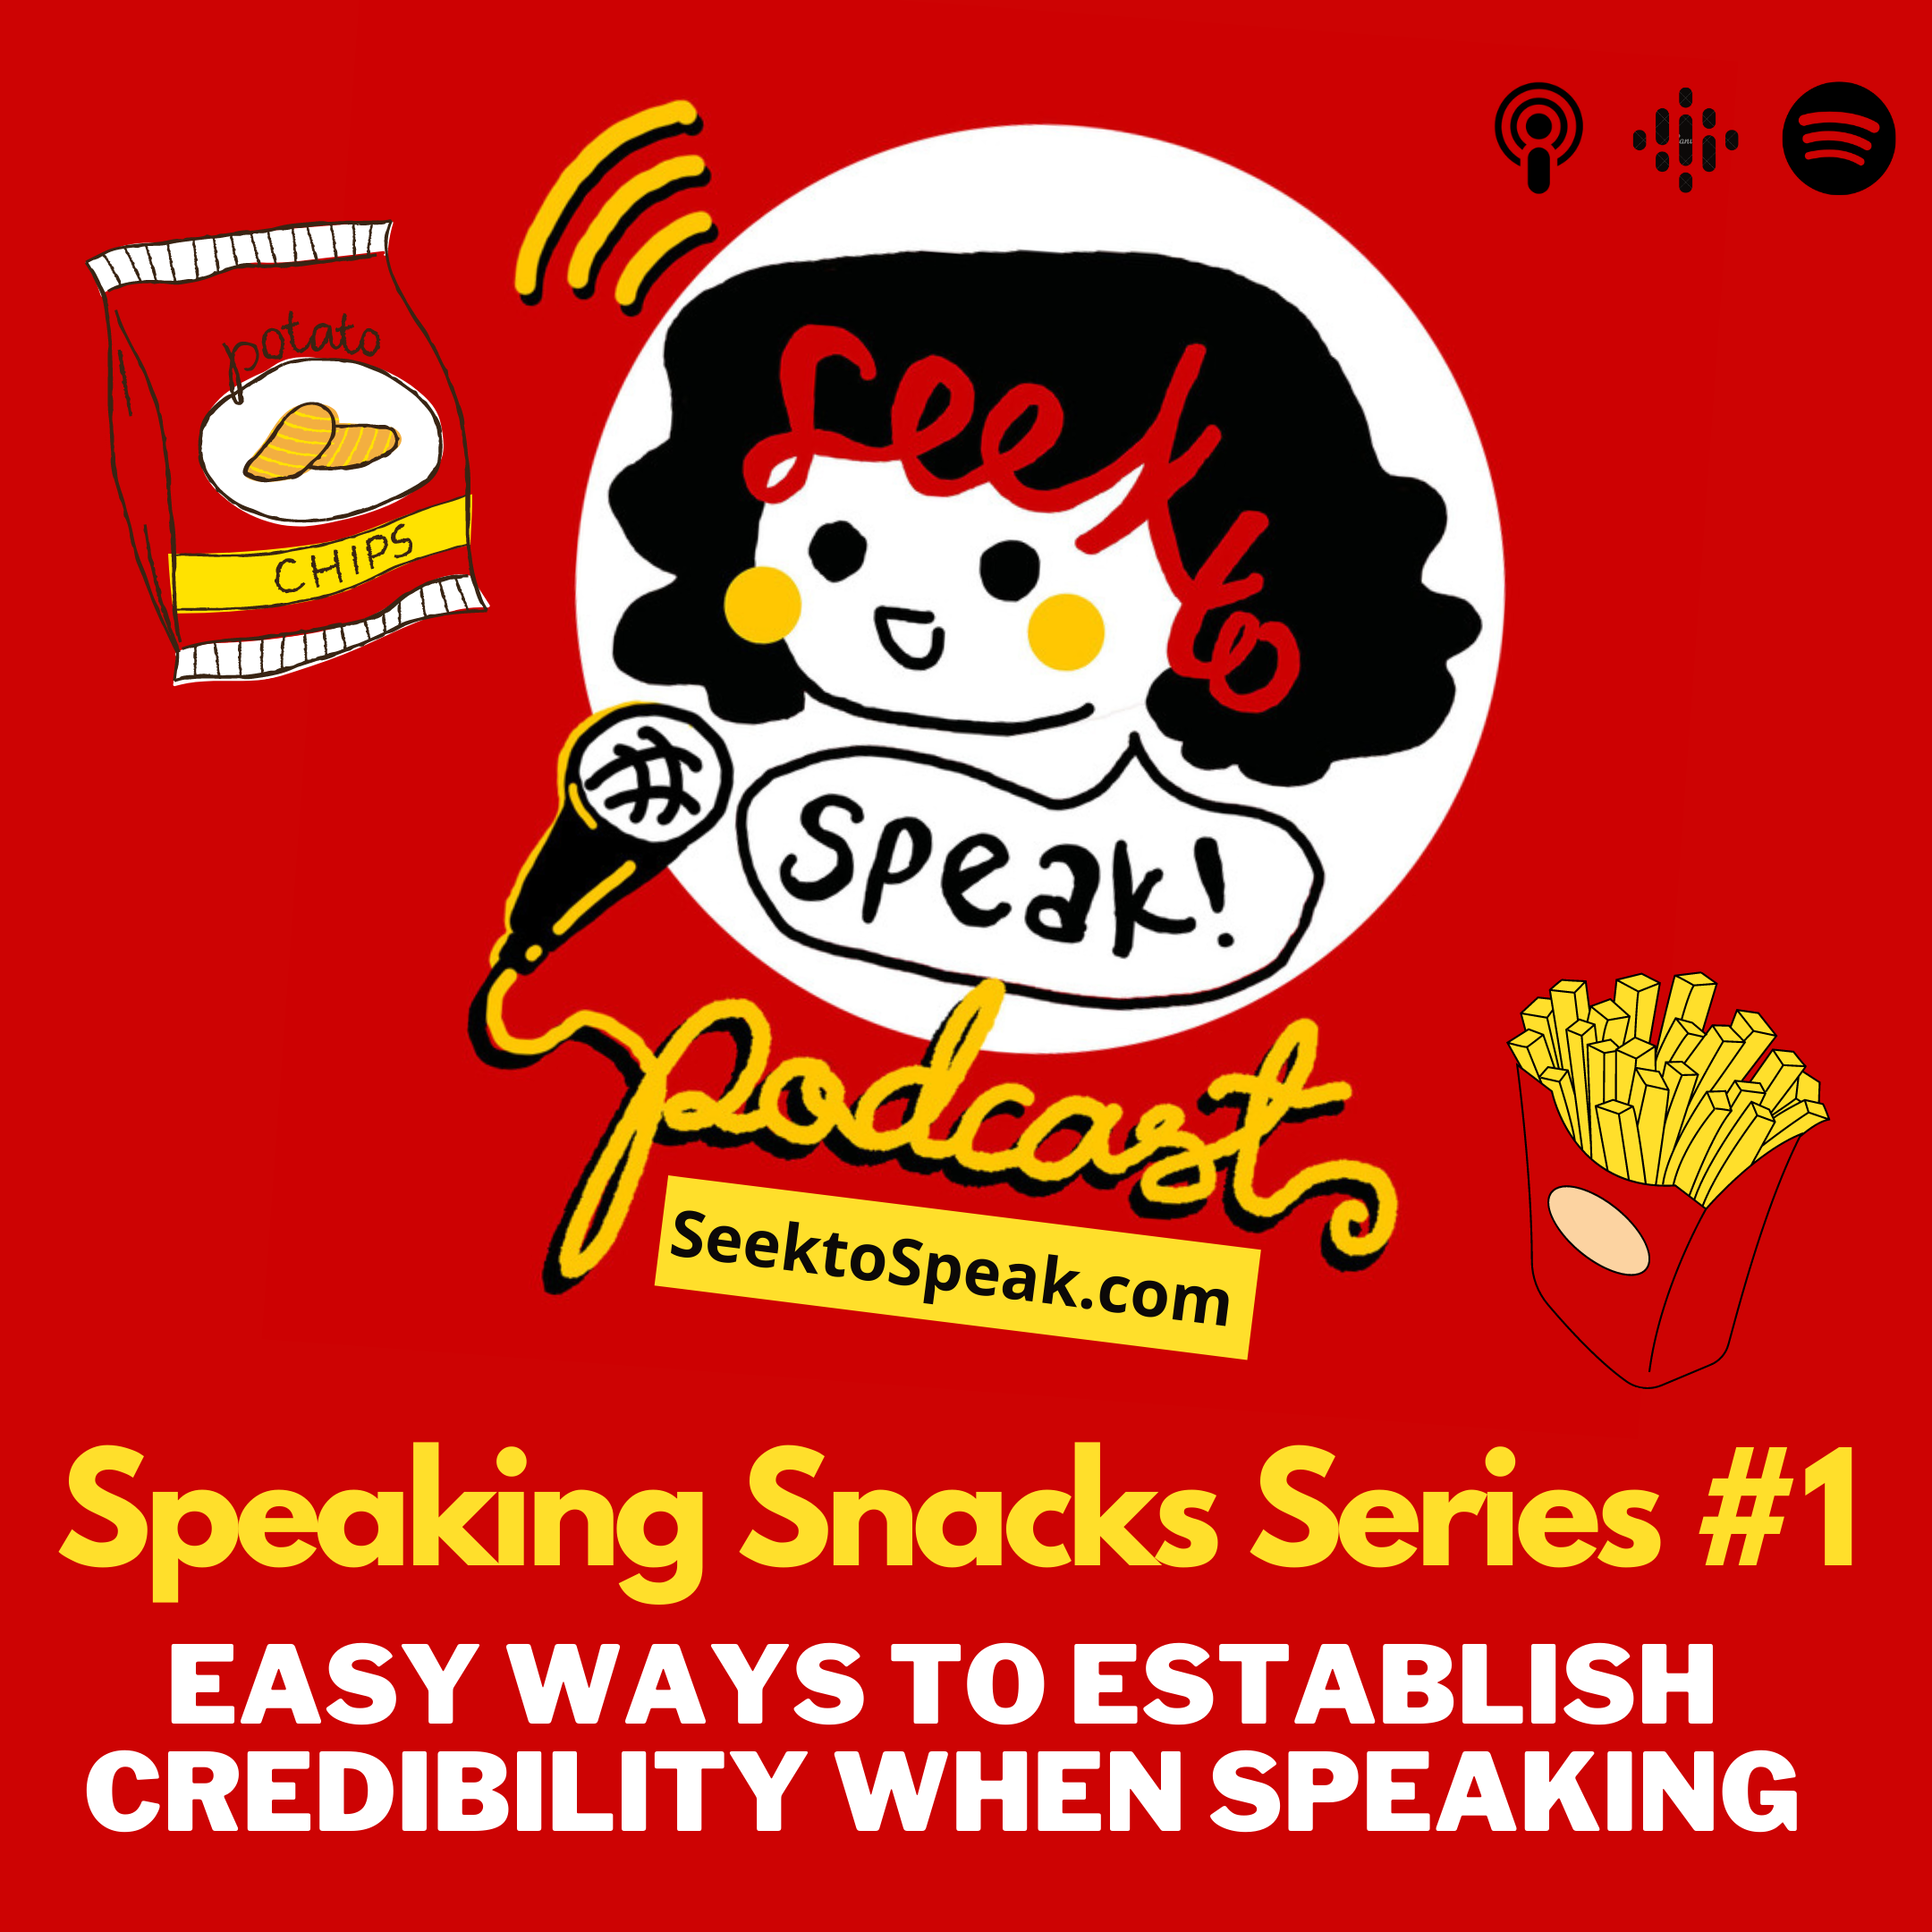 Speaking Snacks Series #1 – How to establish credibility when you speak